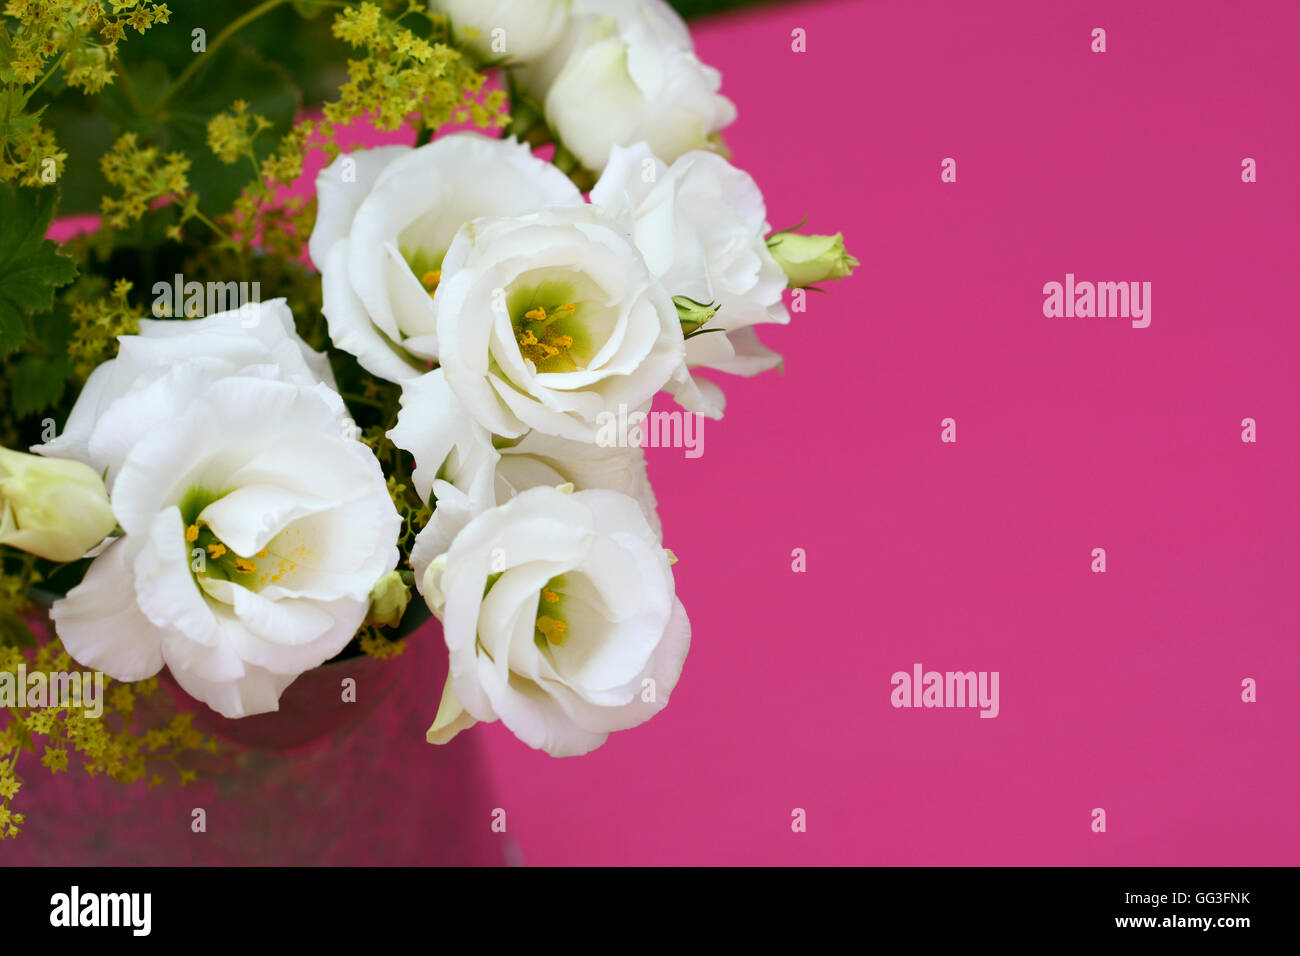 Delicate white prairie gentian flowers against a pink painted background with copy space - Stock Image